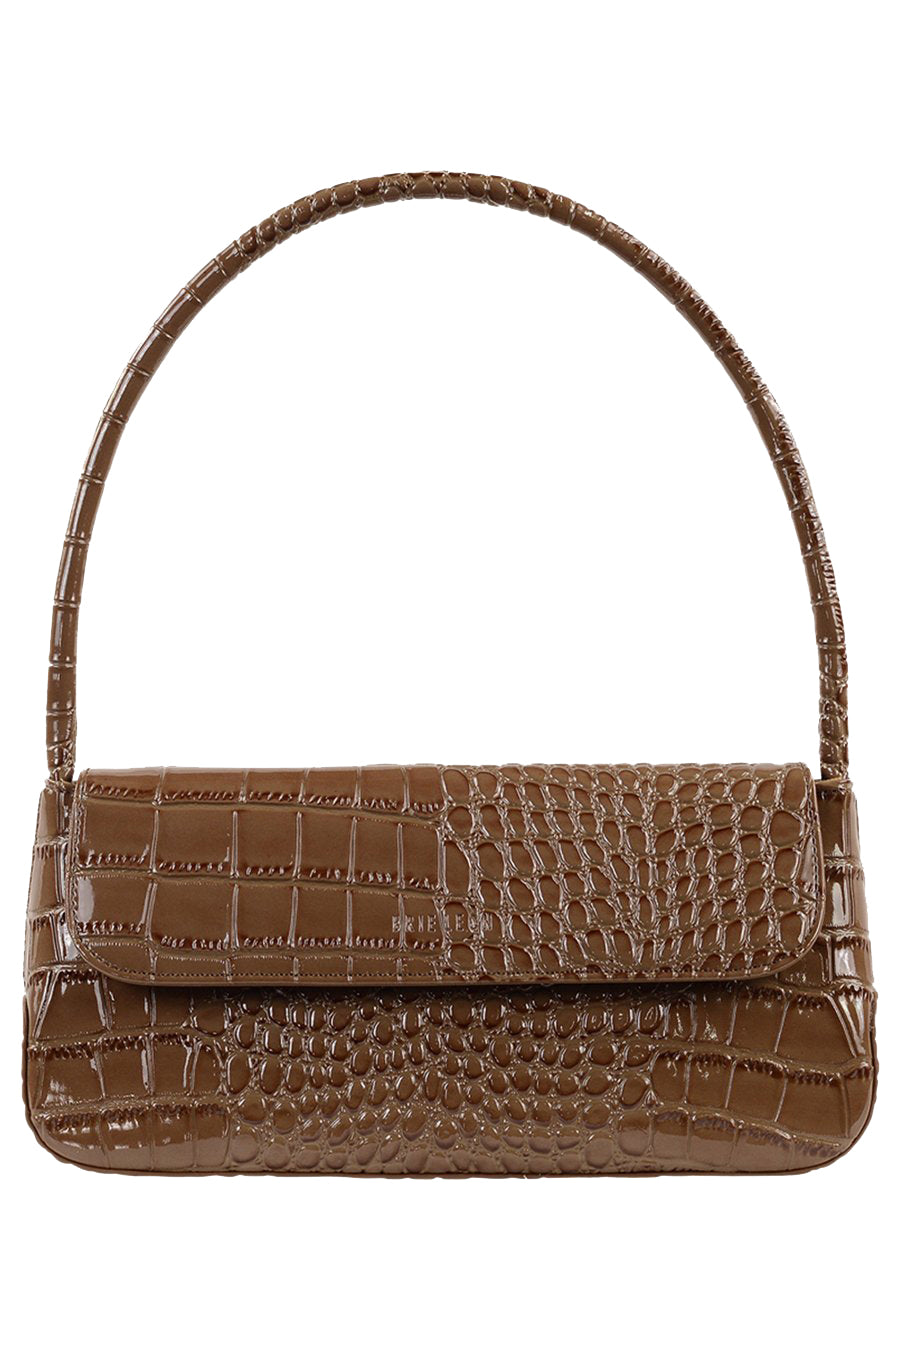 Brie Leon Camille Bag in Mocha Oily Croc